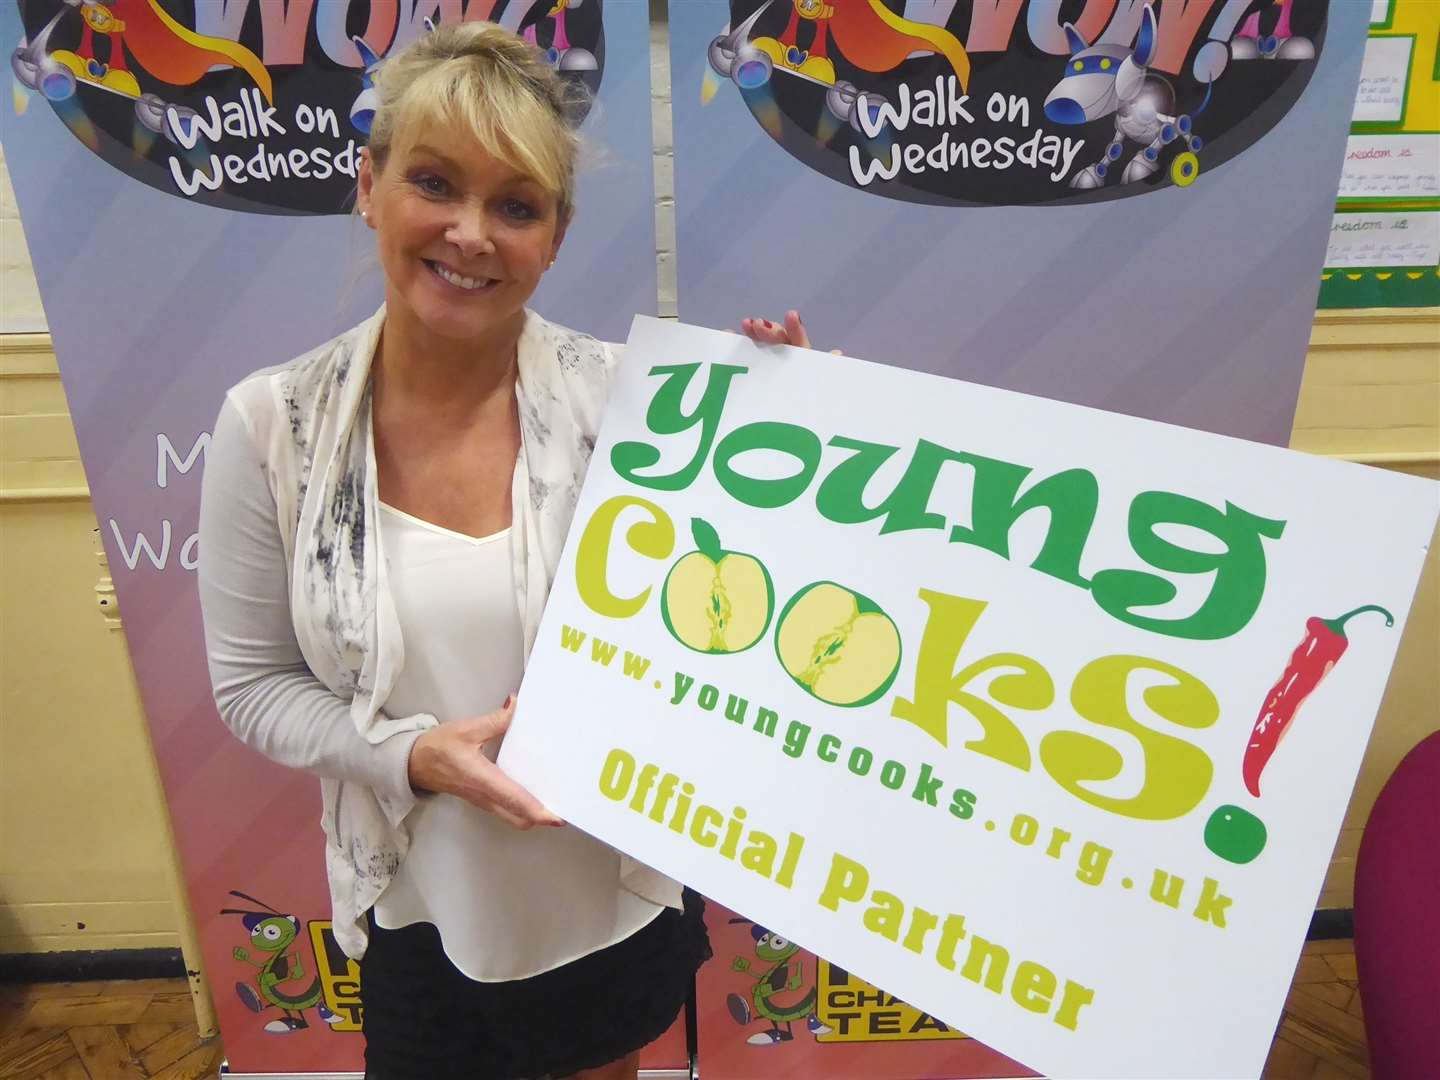 Singer and presenter Cheryl Baker supports Young Cooks